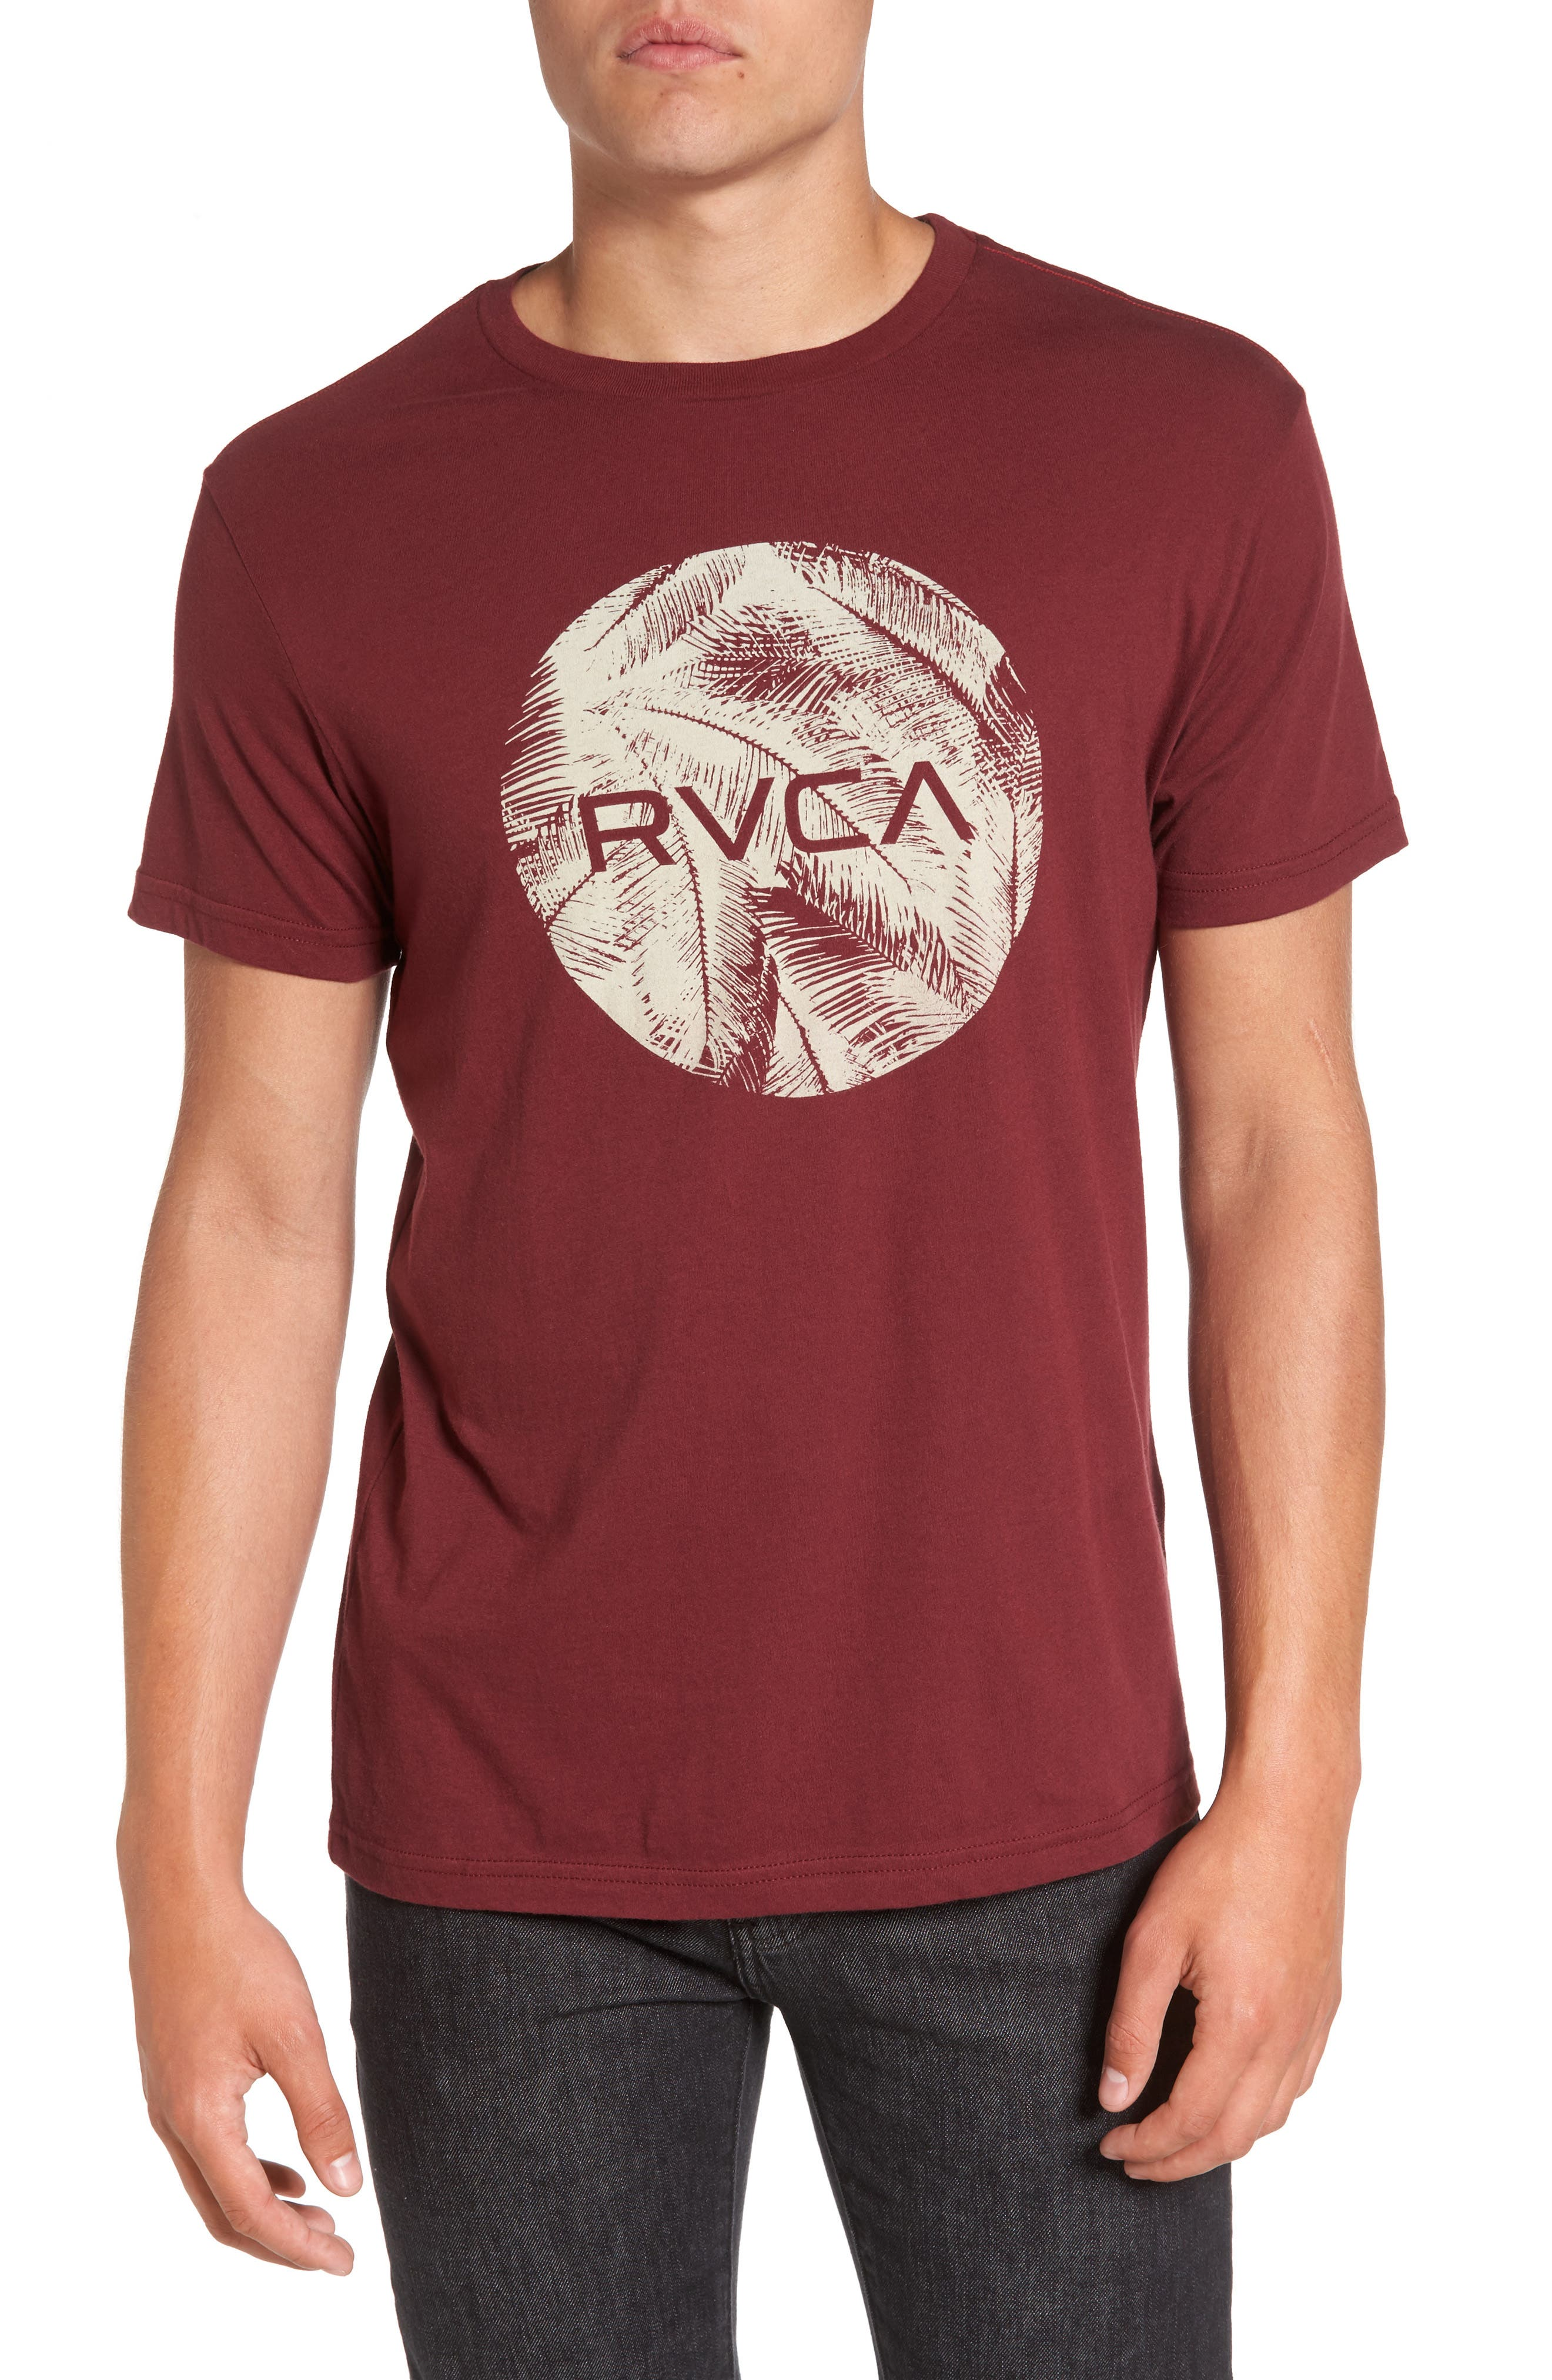 Alternate Image 1 Selected - RVCA Motors Palm Graphic T-Shirt